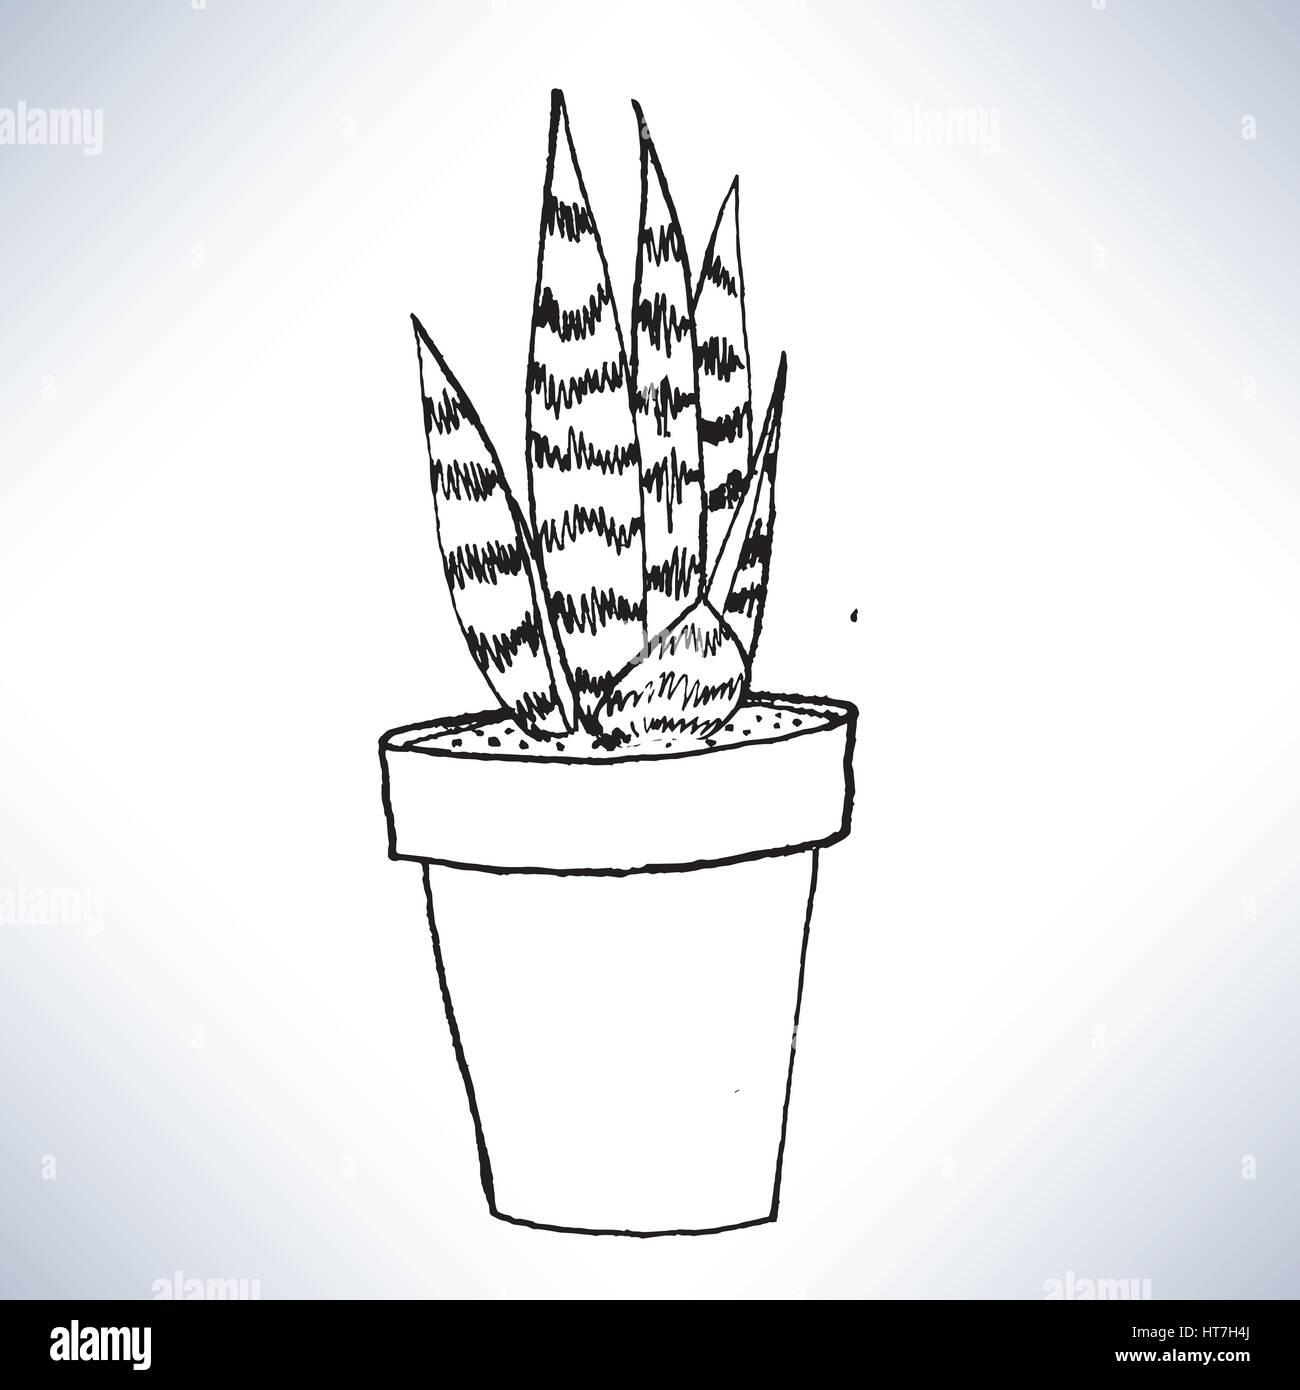 Isolated hand drawn lineart a potted plant - Stock Image